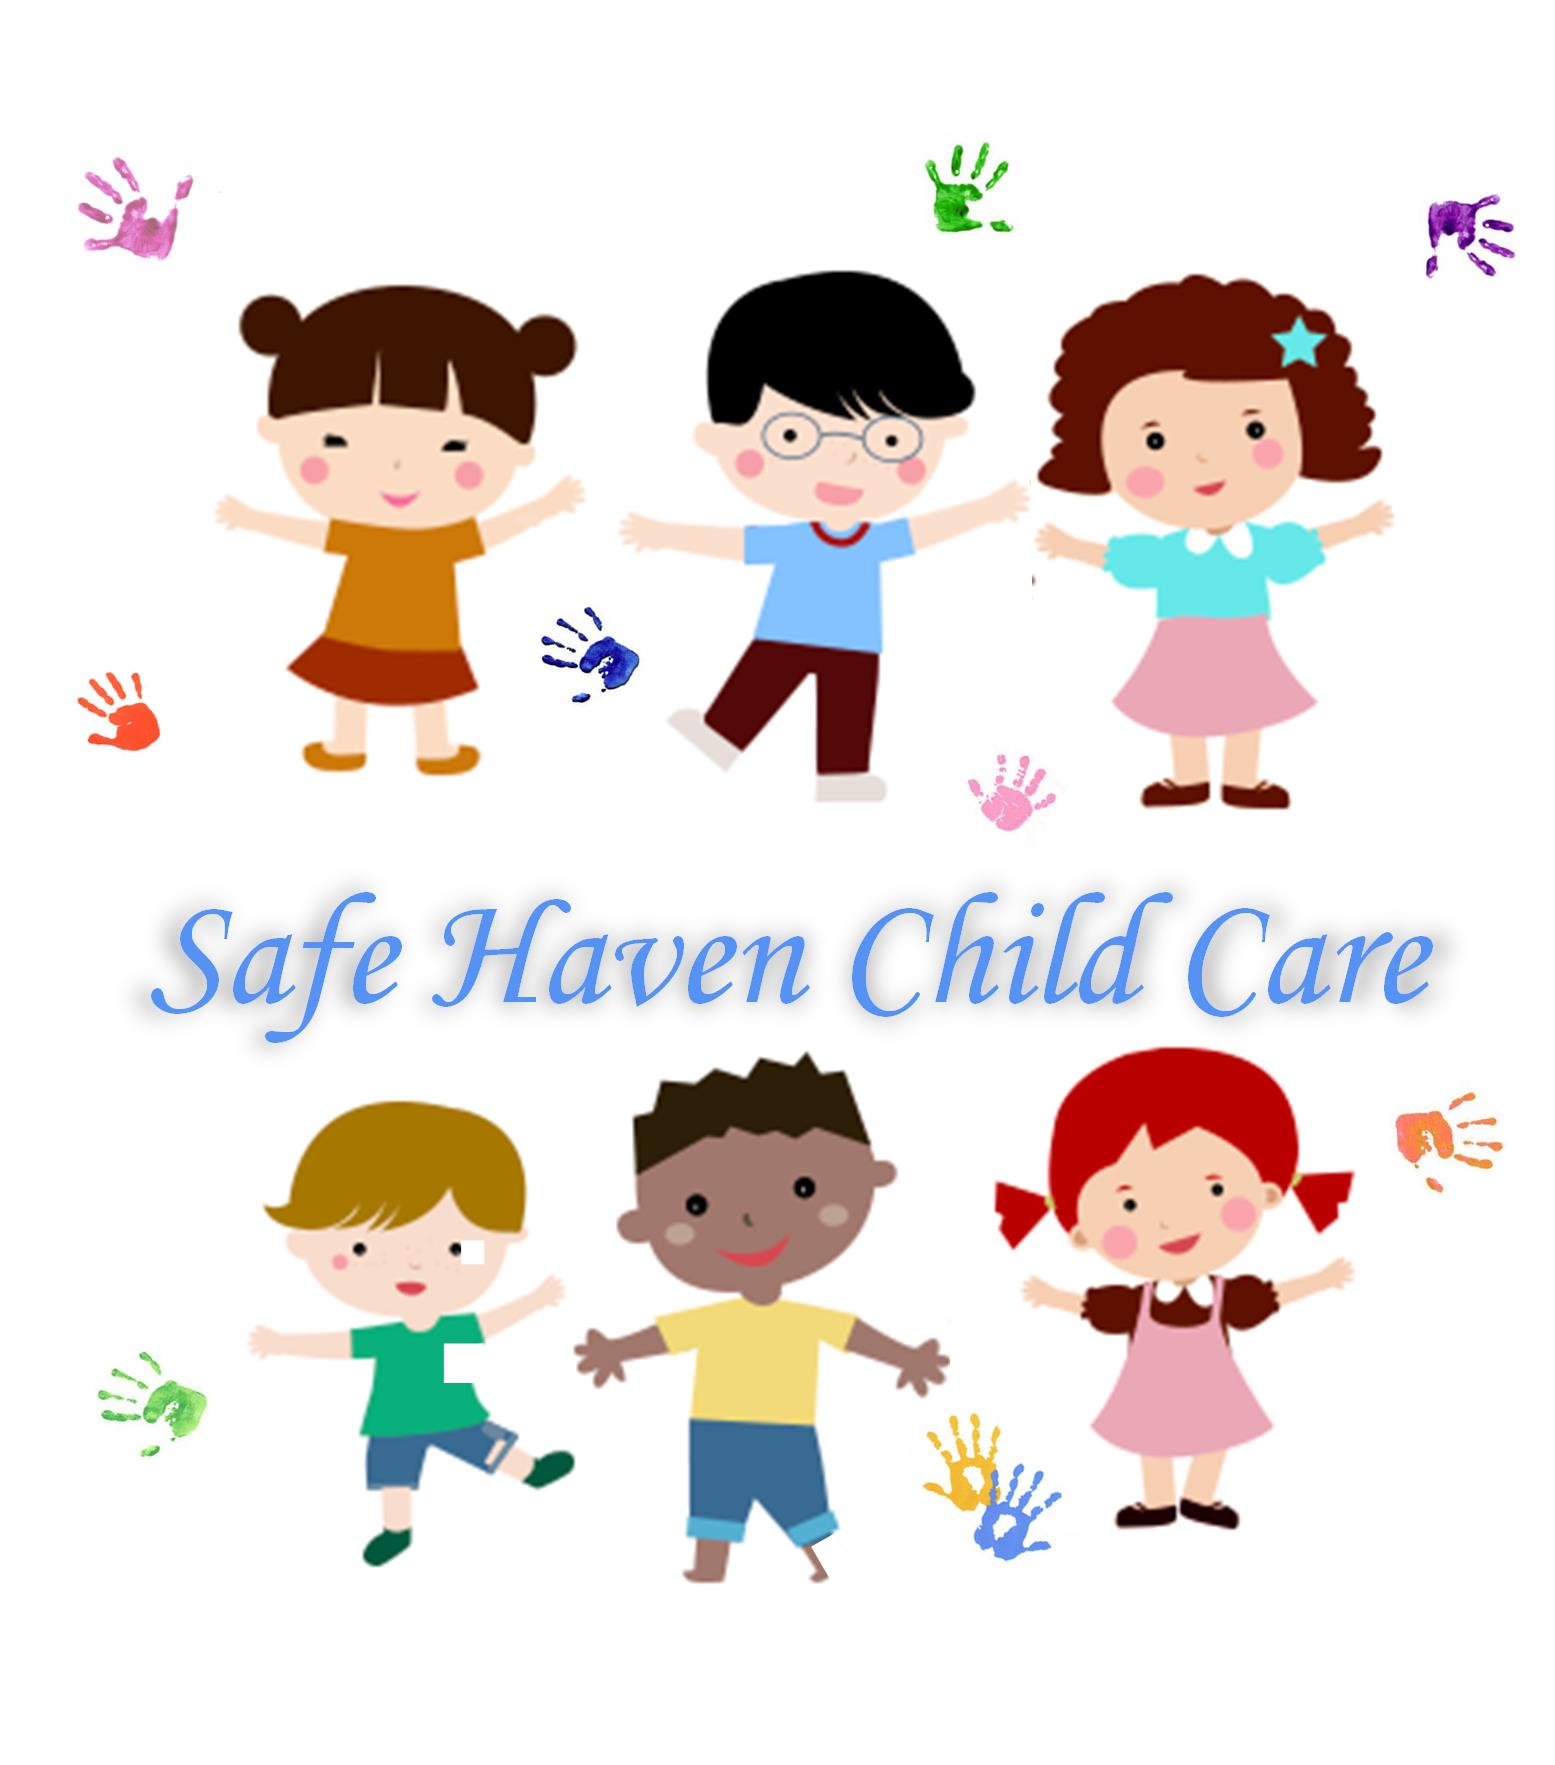 Safe Haven Child Care